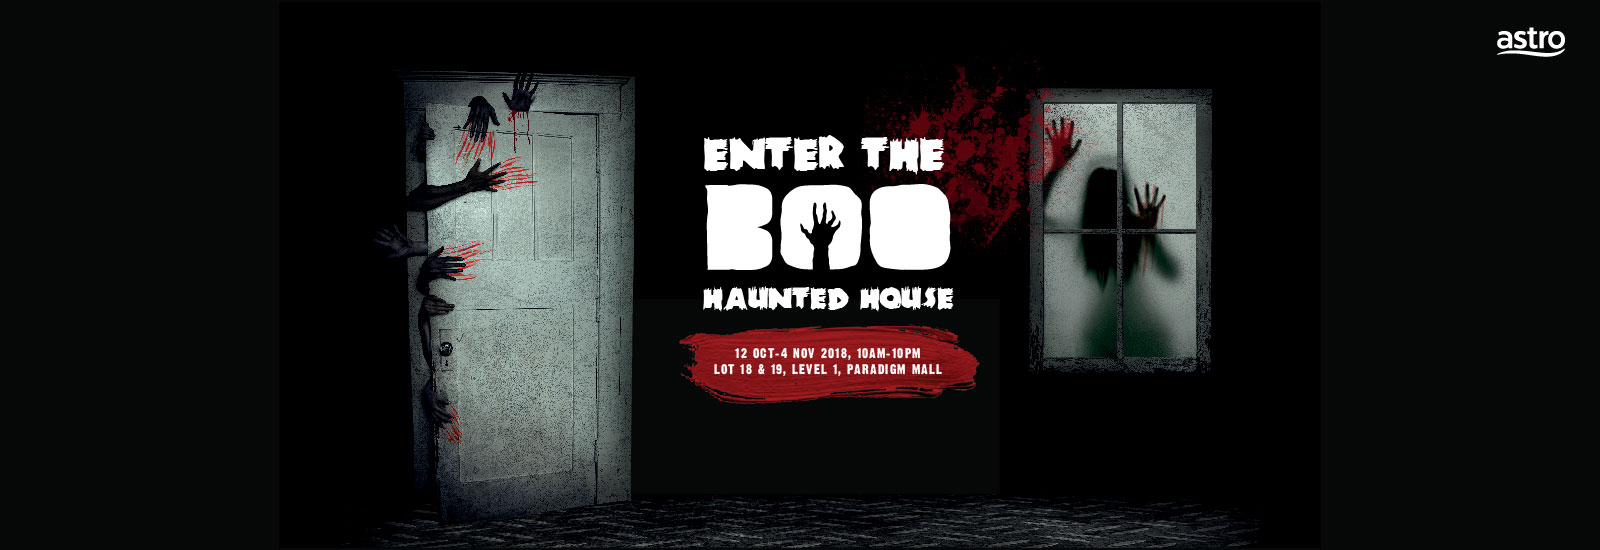 Boo Haunted House 2018